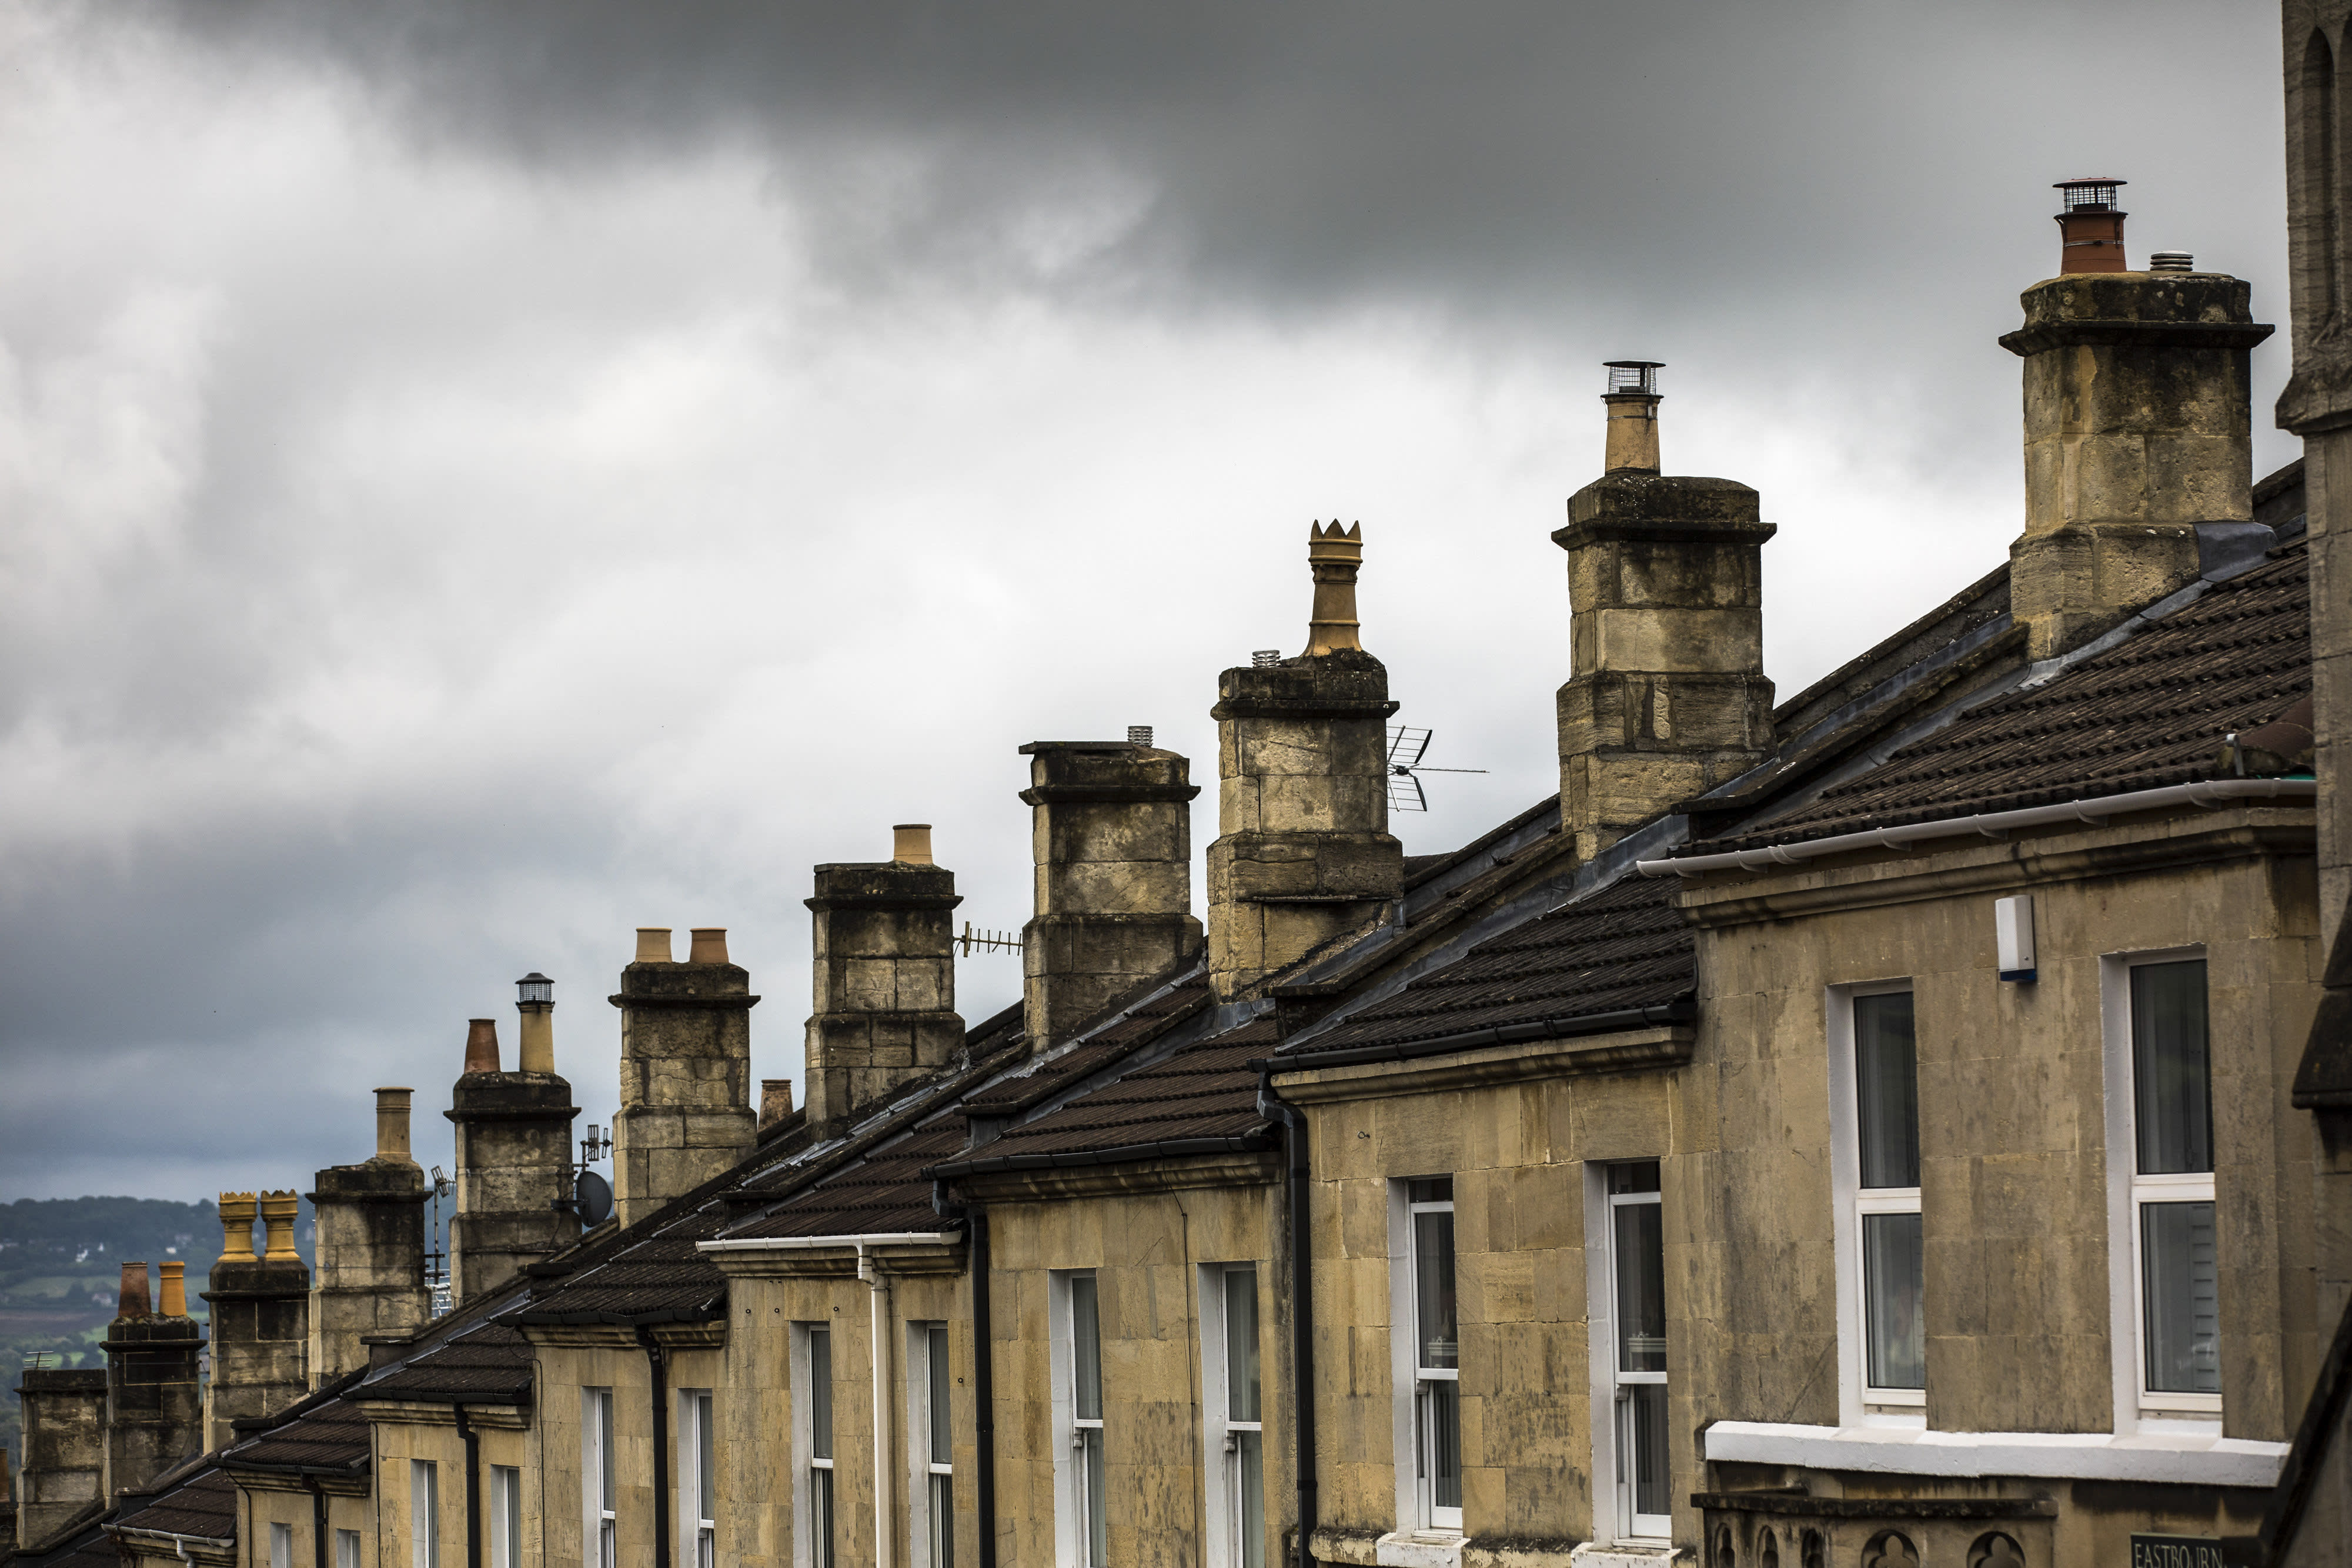 House prices drop in wake of lockdown